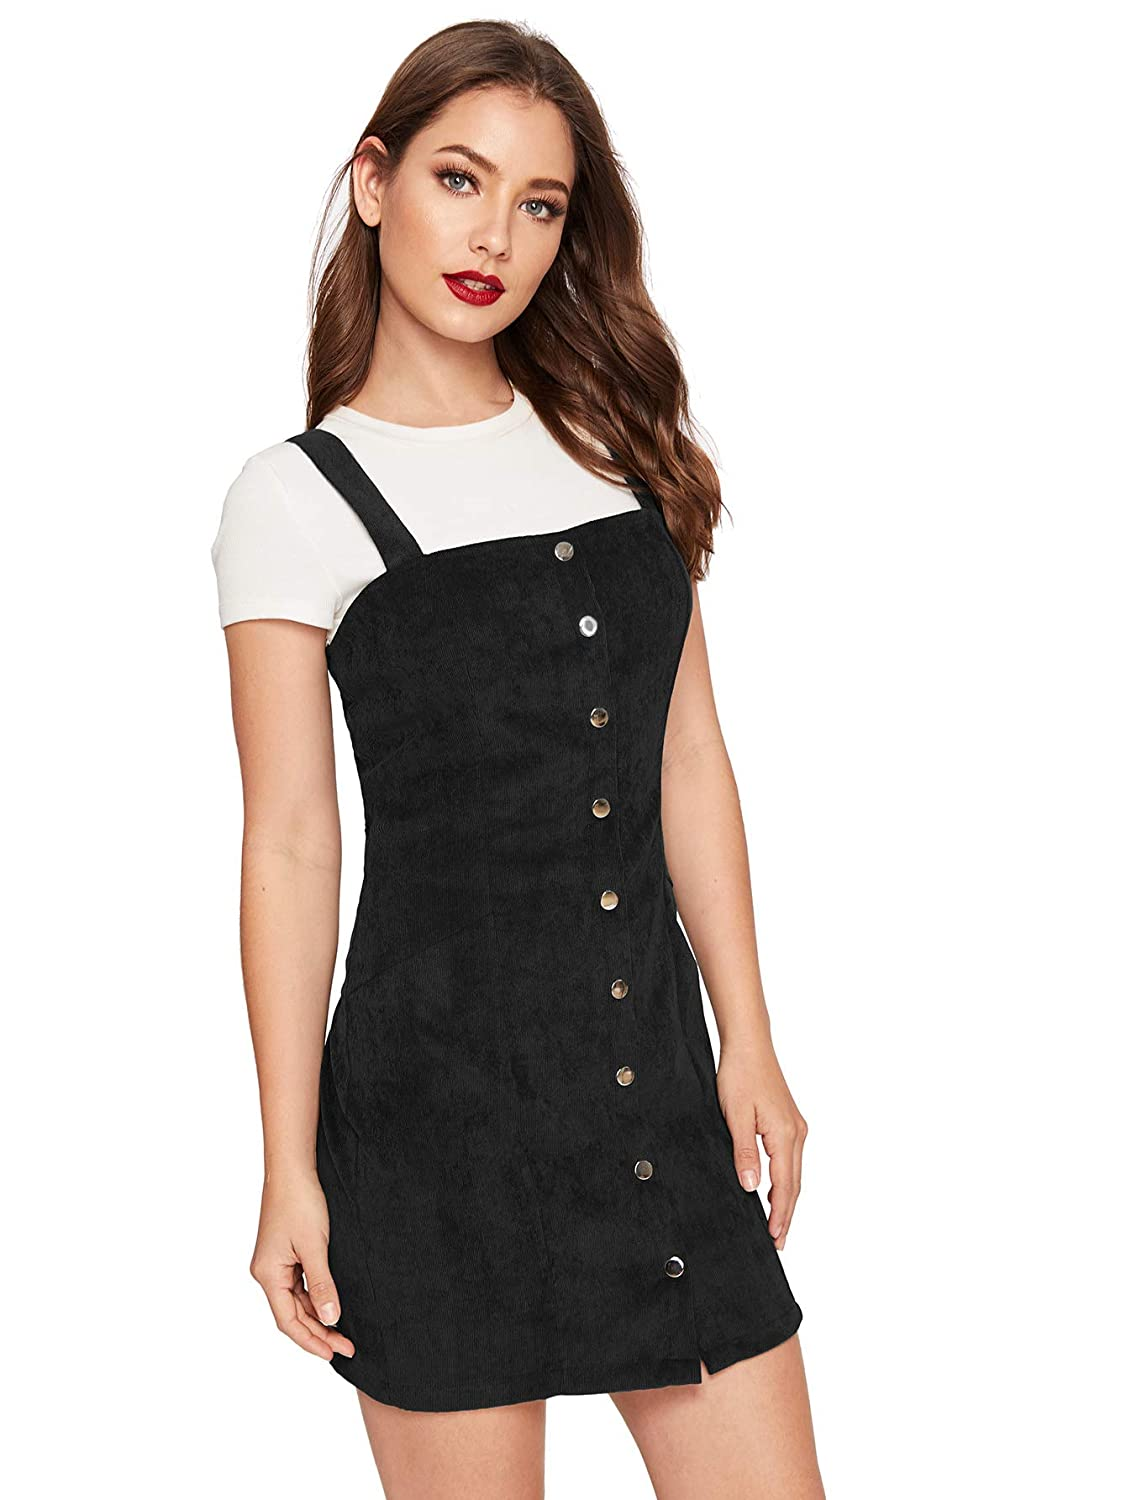 e30ddf1e3 Floerns Women's Cute Strap Button up Corduroy Overall Sheath Pinafore Dress  at Amazon Women's Clothing store: